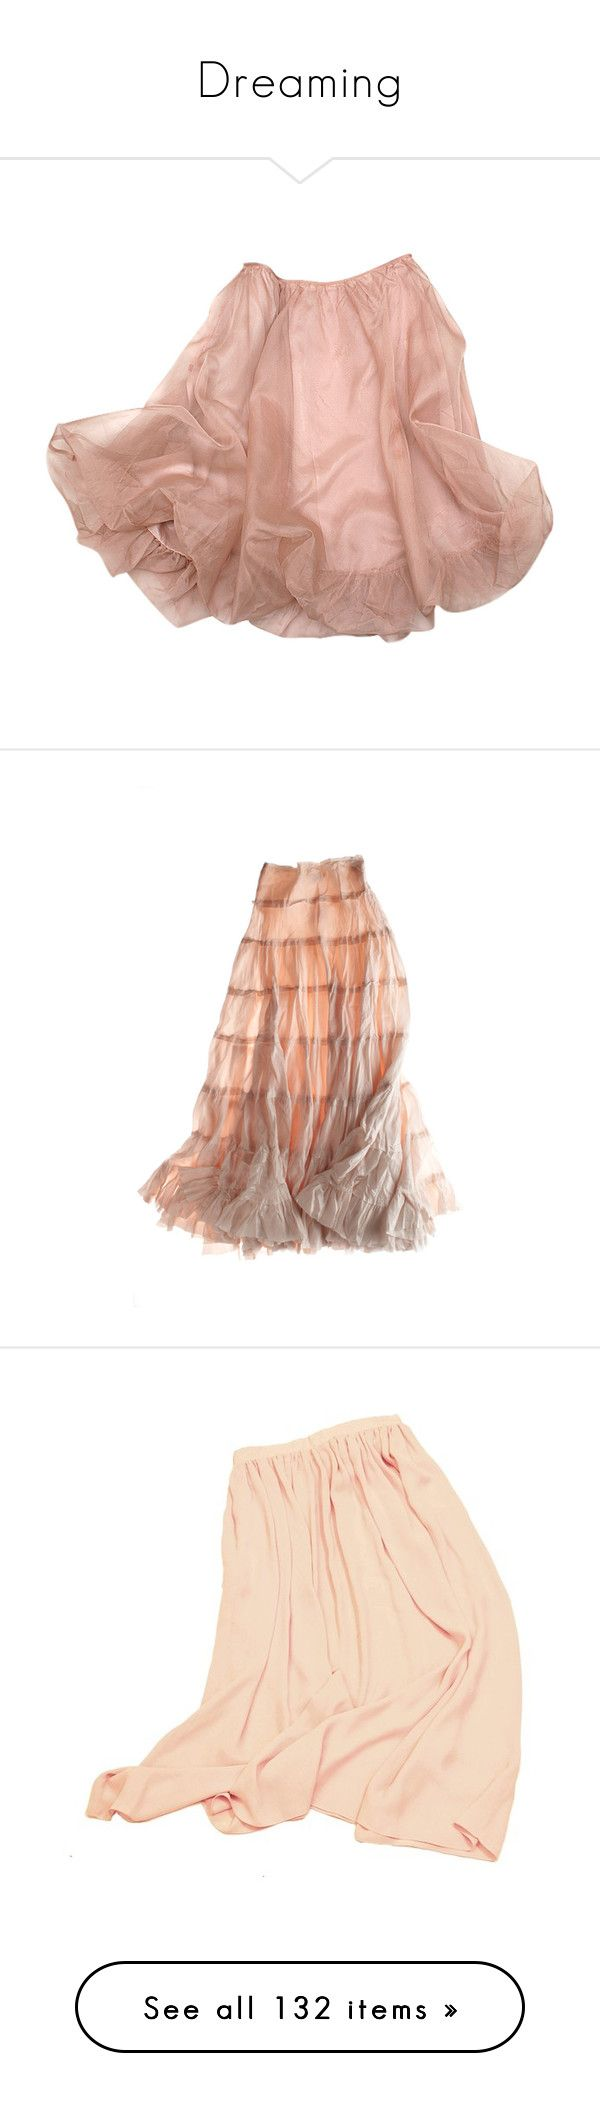 """""""Dreaming"""" by eslafae ❤ liked on Polyvore featuring skirts, bottoms, faldas, dresses, brown skirt, calypso st. barth, юбки, gonne, pink skirt and chiffon skirt"""